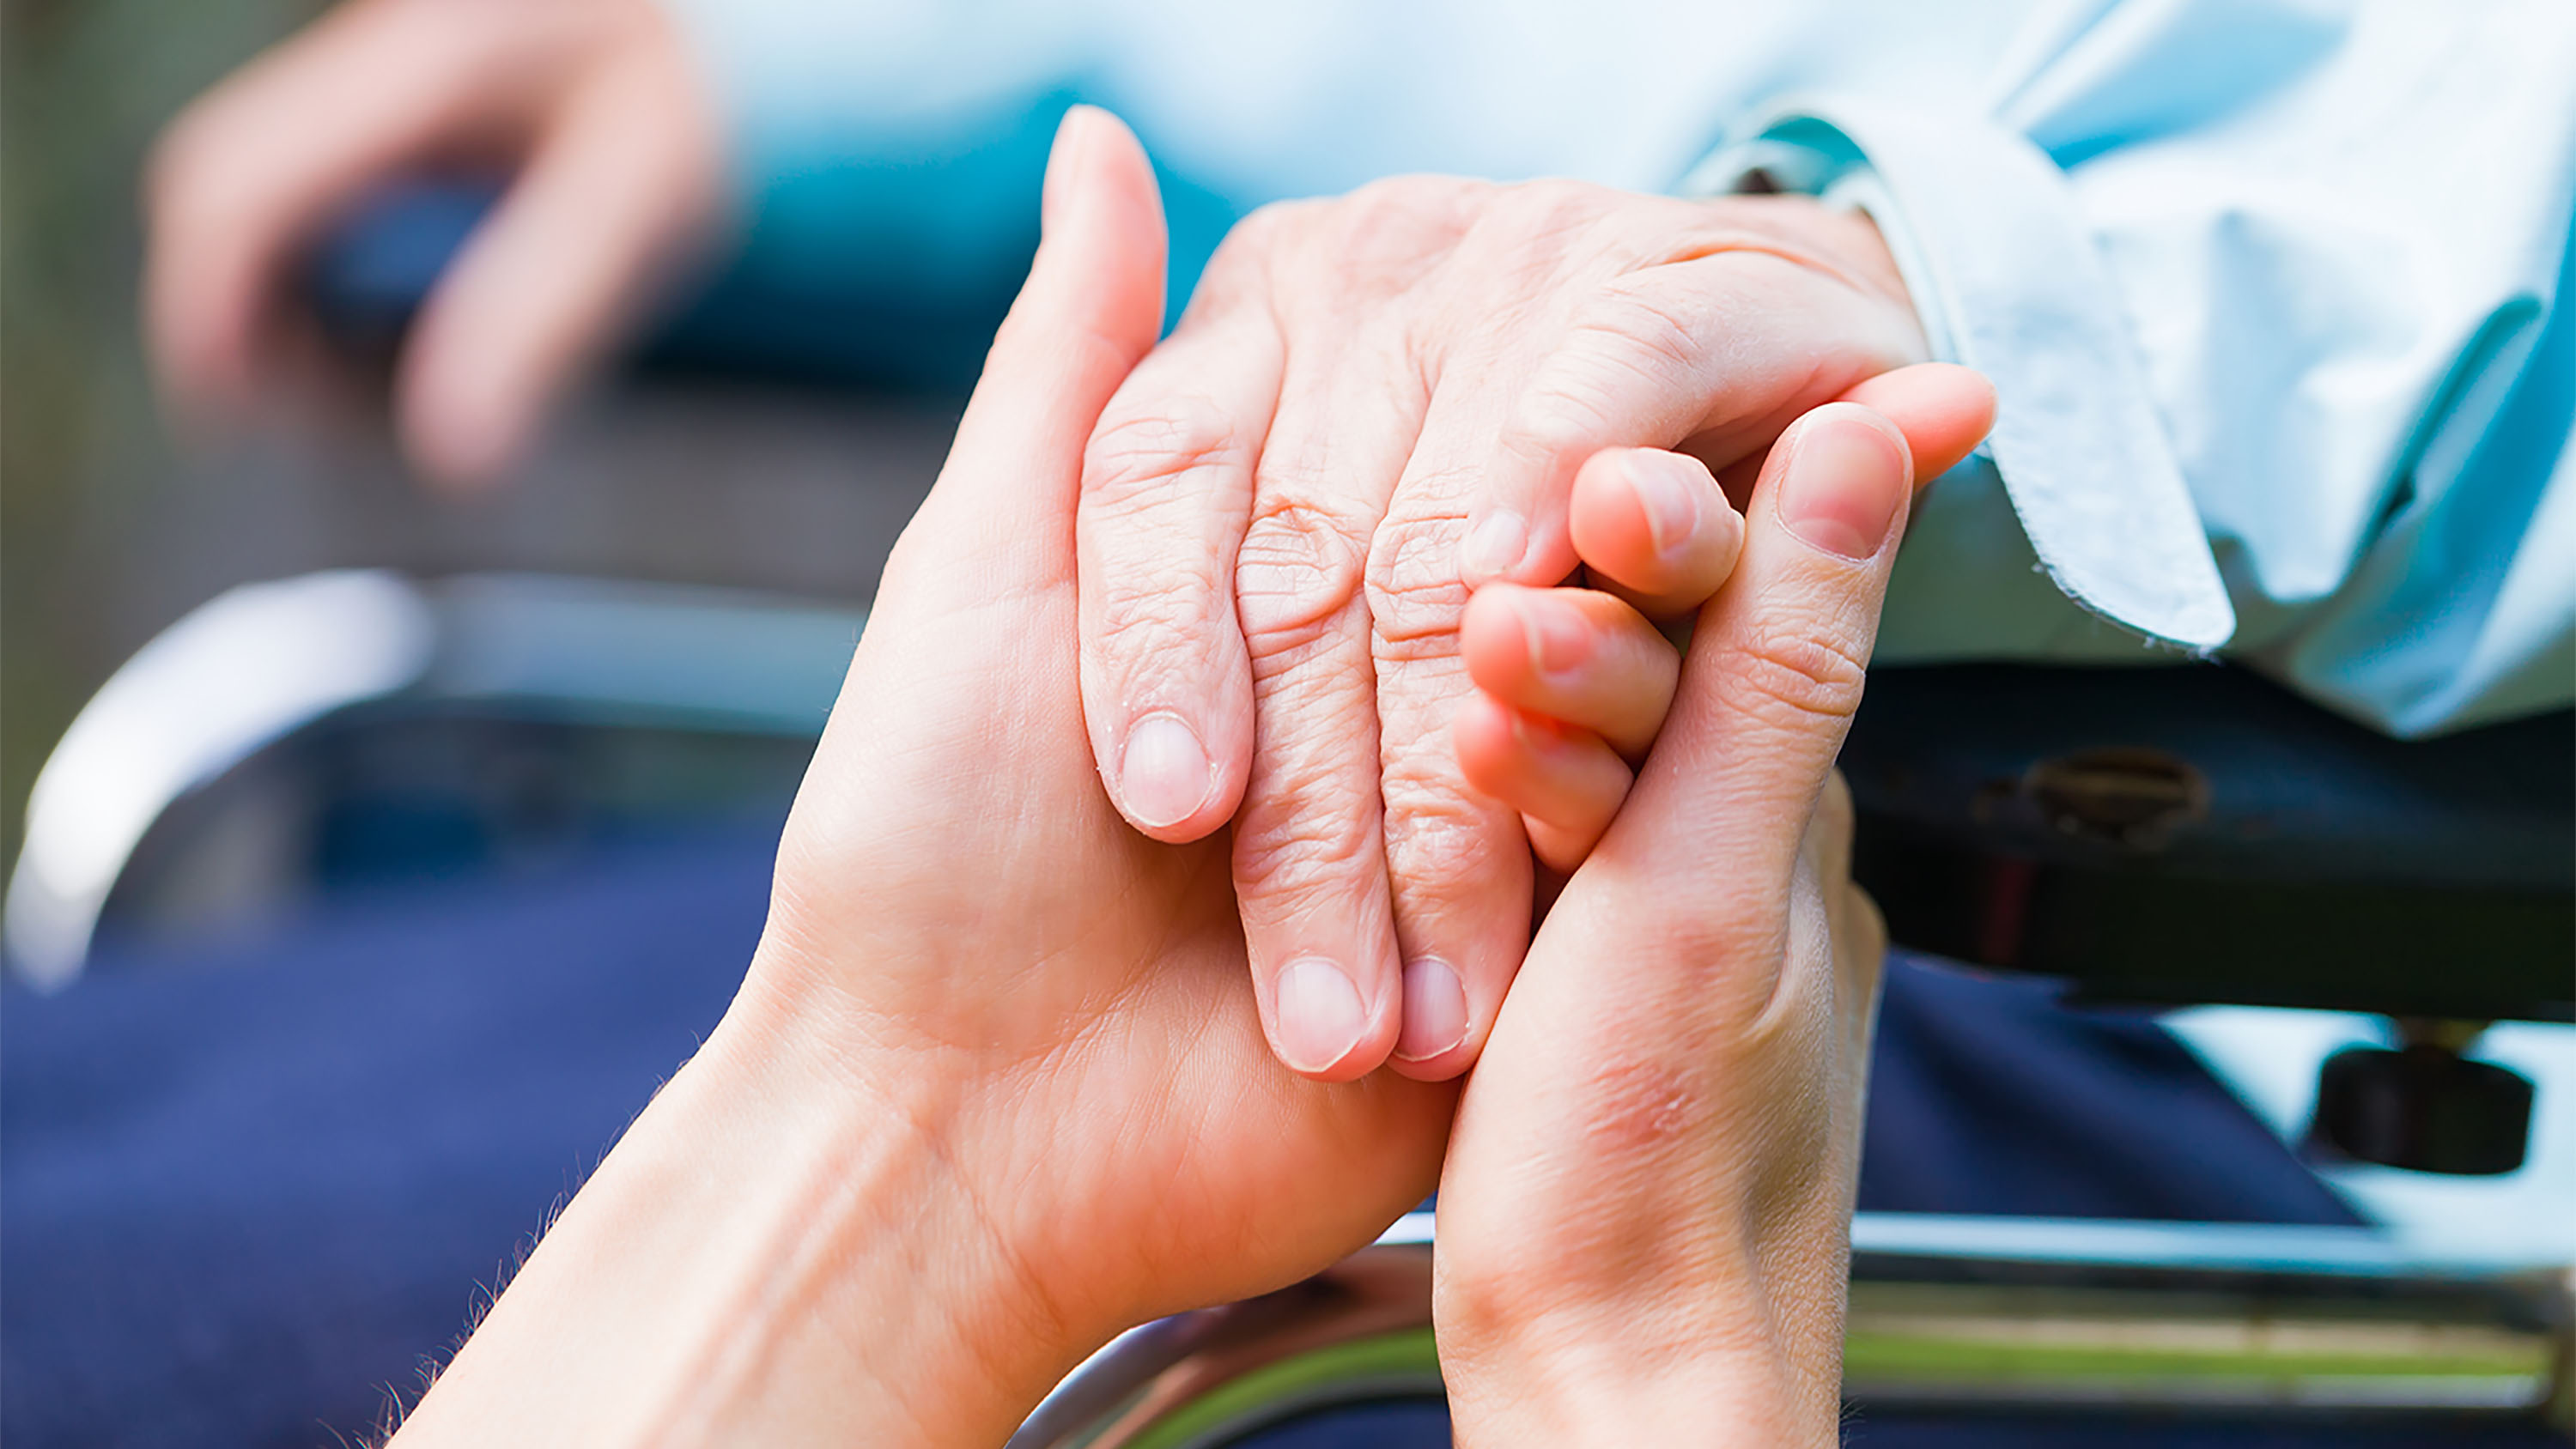 two young hands hold the older hand of someone in a wheelchair